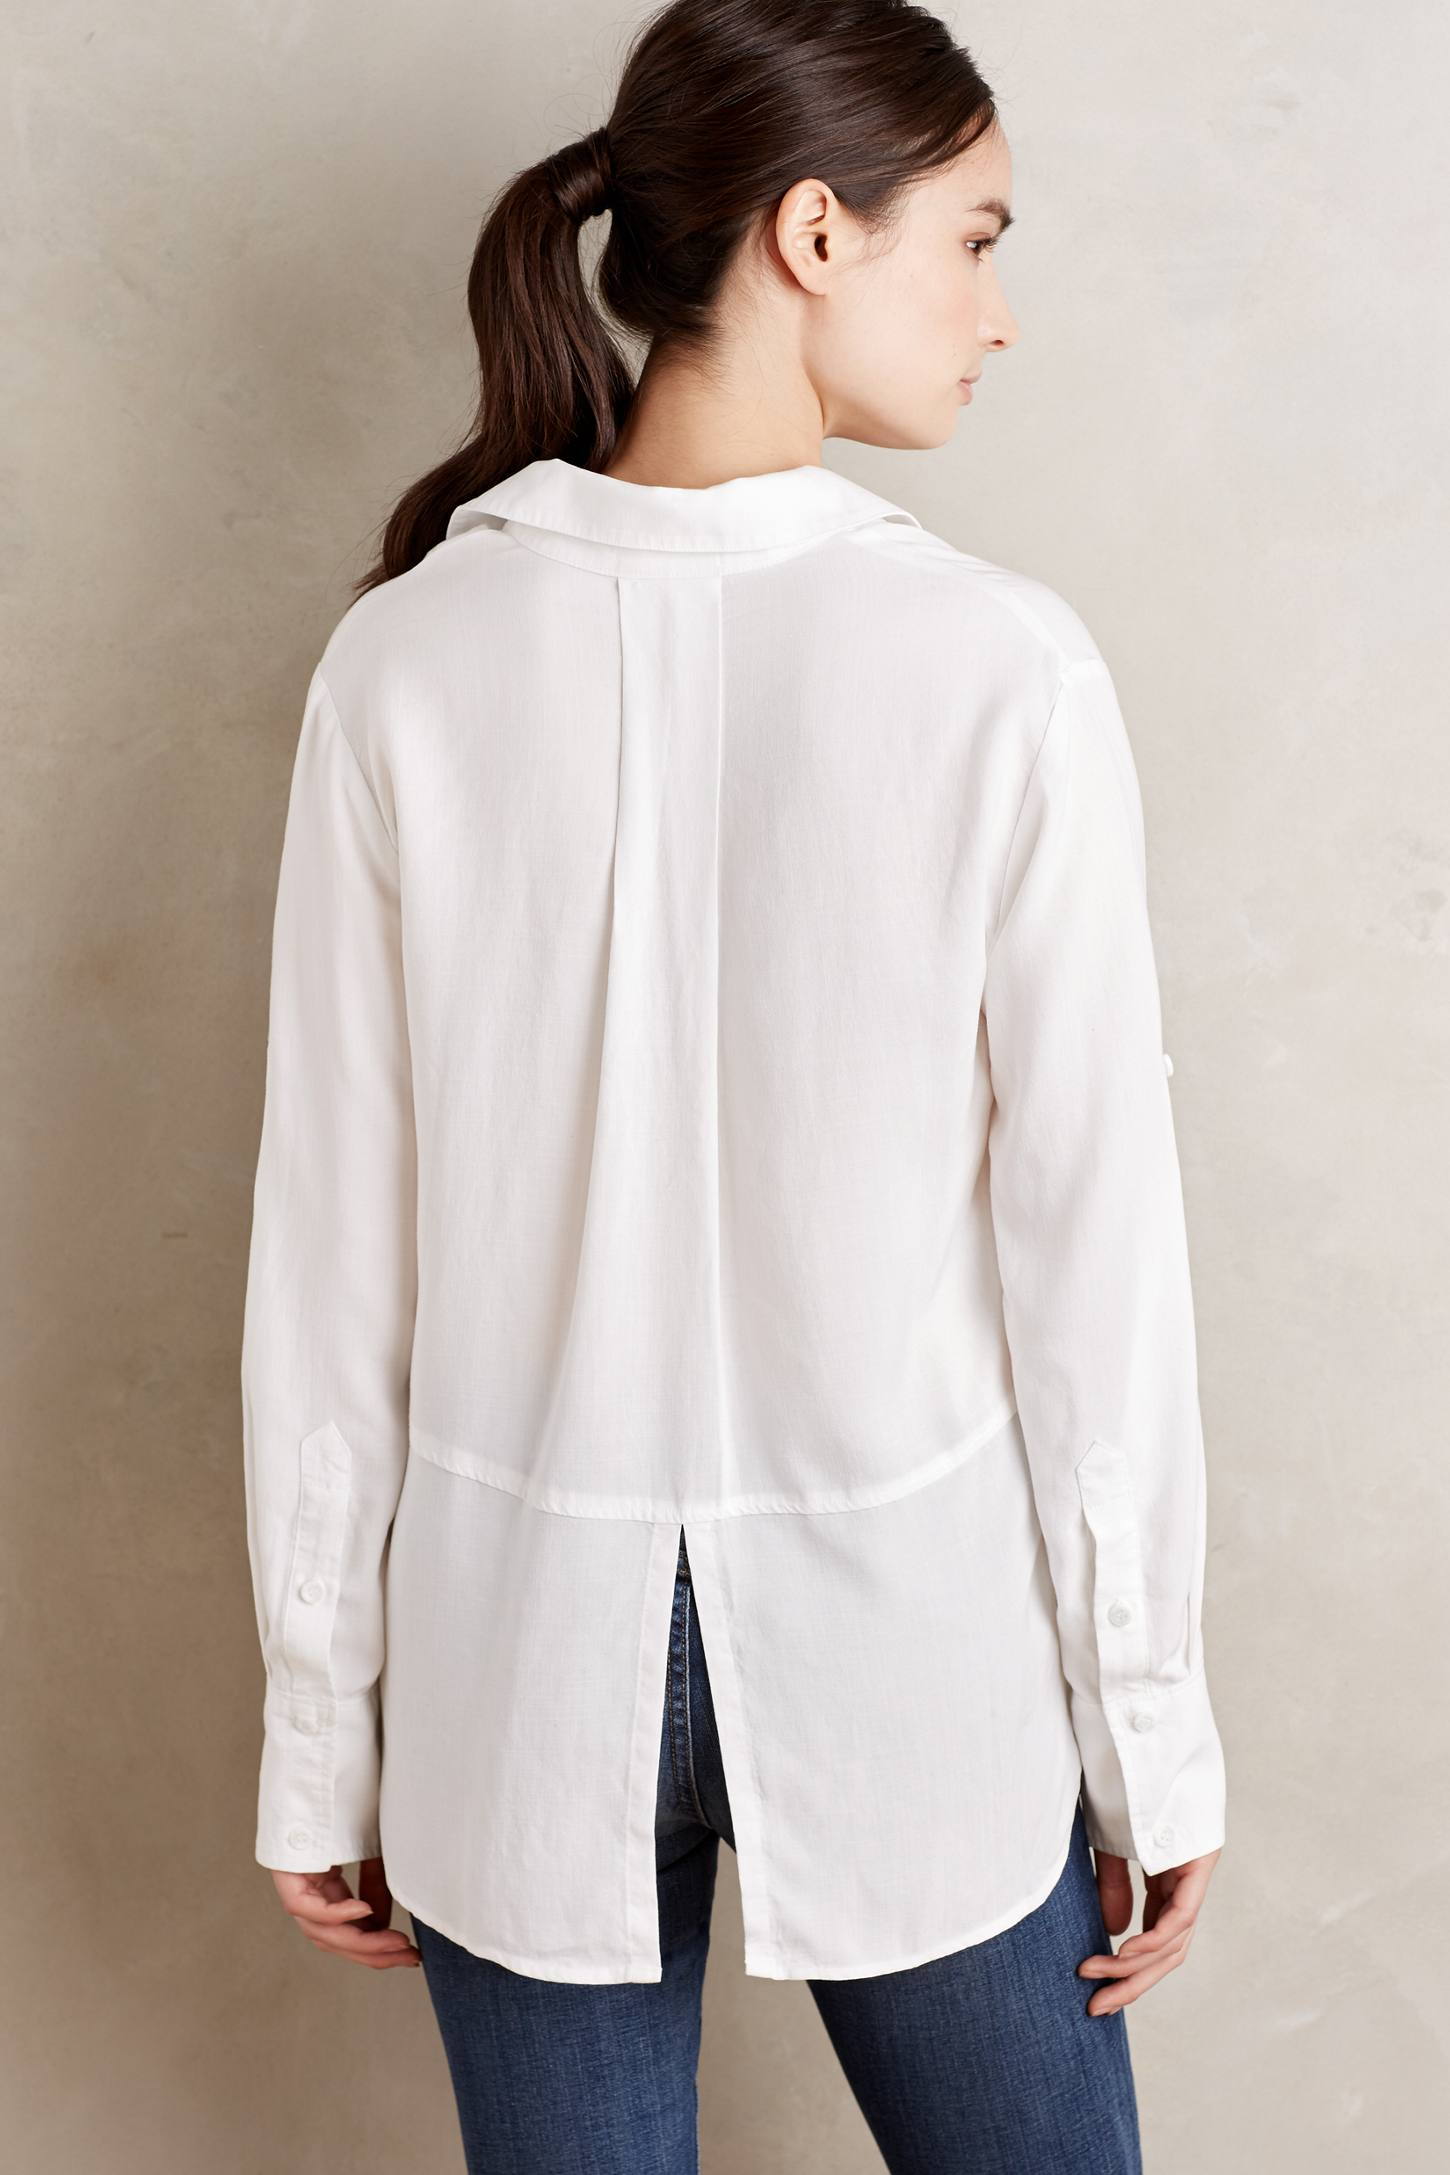 Oxford Shirts For Women